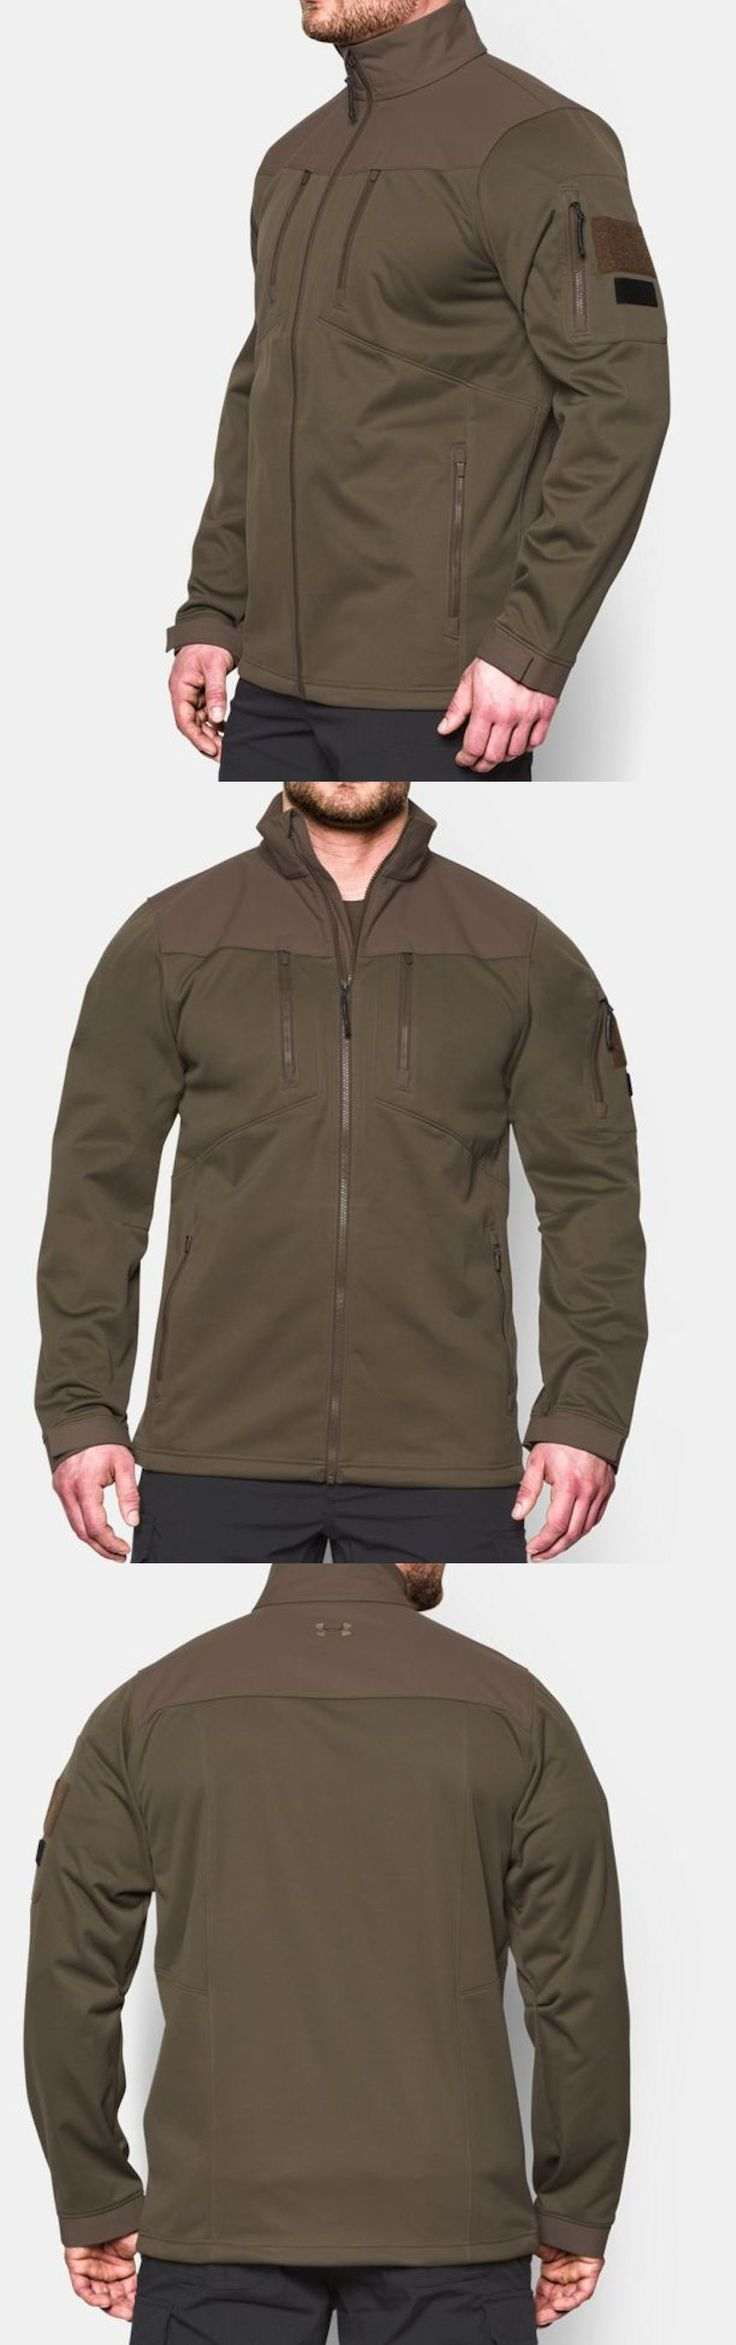 Coats and Jackets 177868: Under Armour 1236639 Ua Storm Tactical Gale Force Men'S Tactical Jacket 2Xl Nwt -> BUY IT NOW ONLY: $109.99 on eBay!